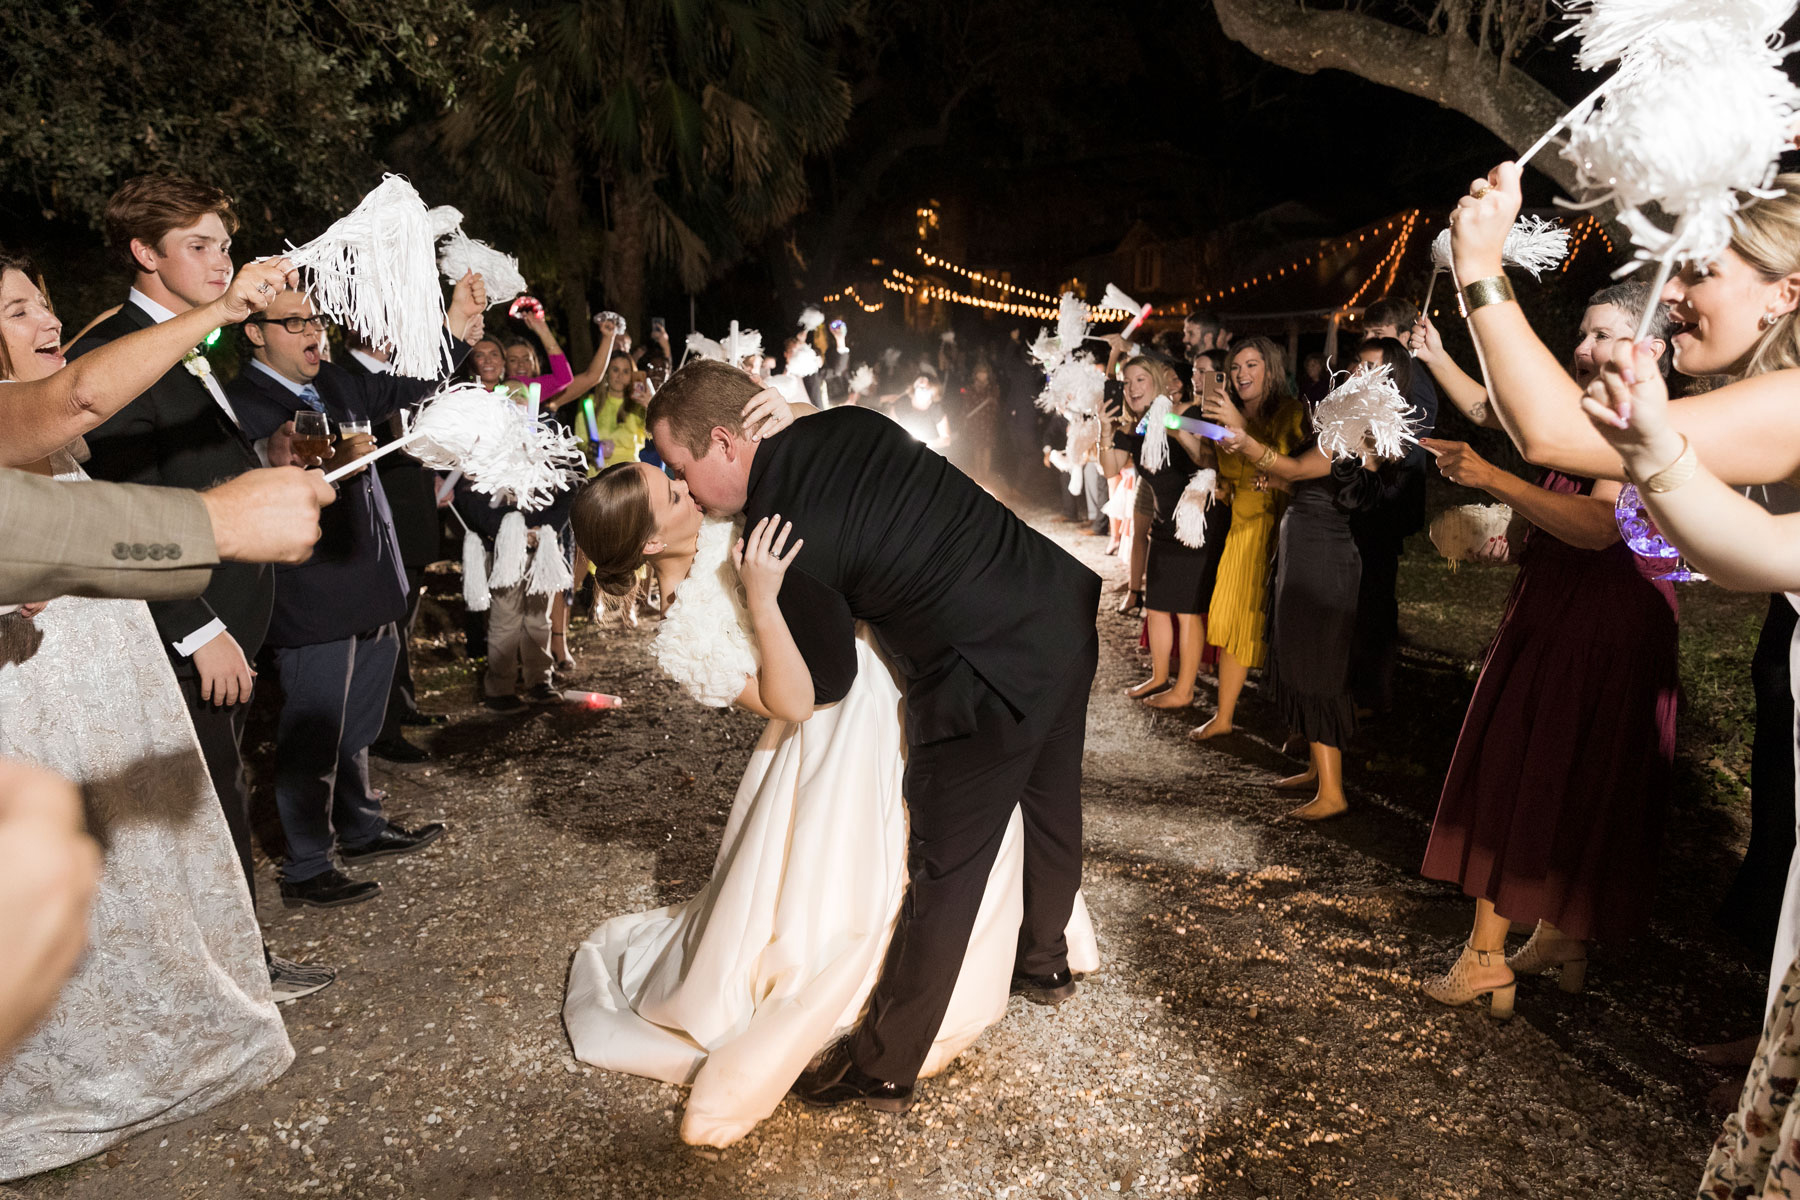 Romantic grand exit photo of the bride and groom kissing in a dip with shakers